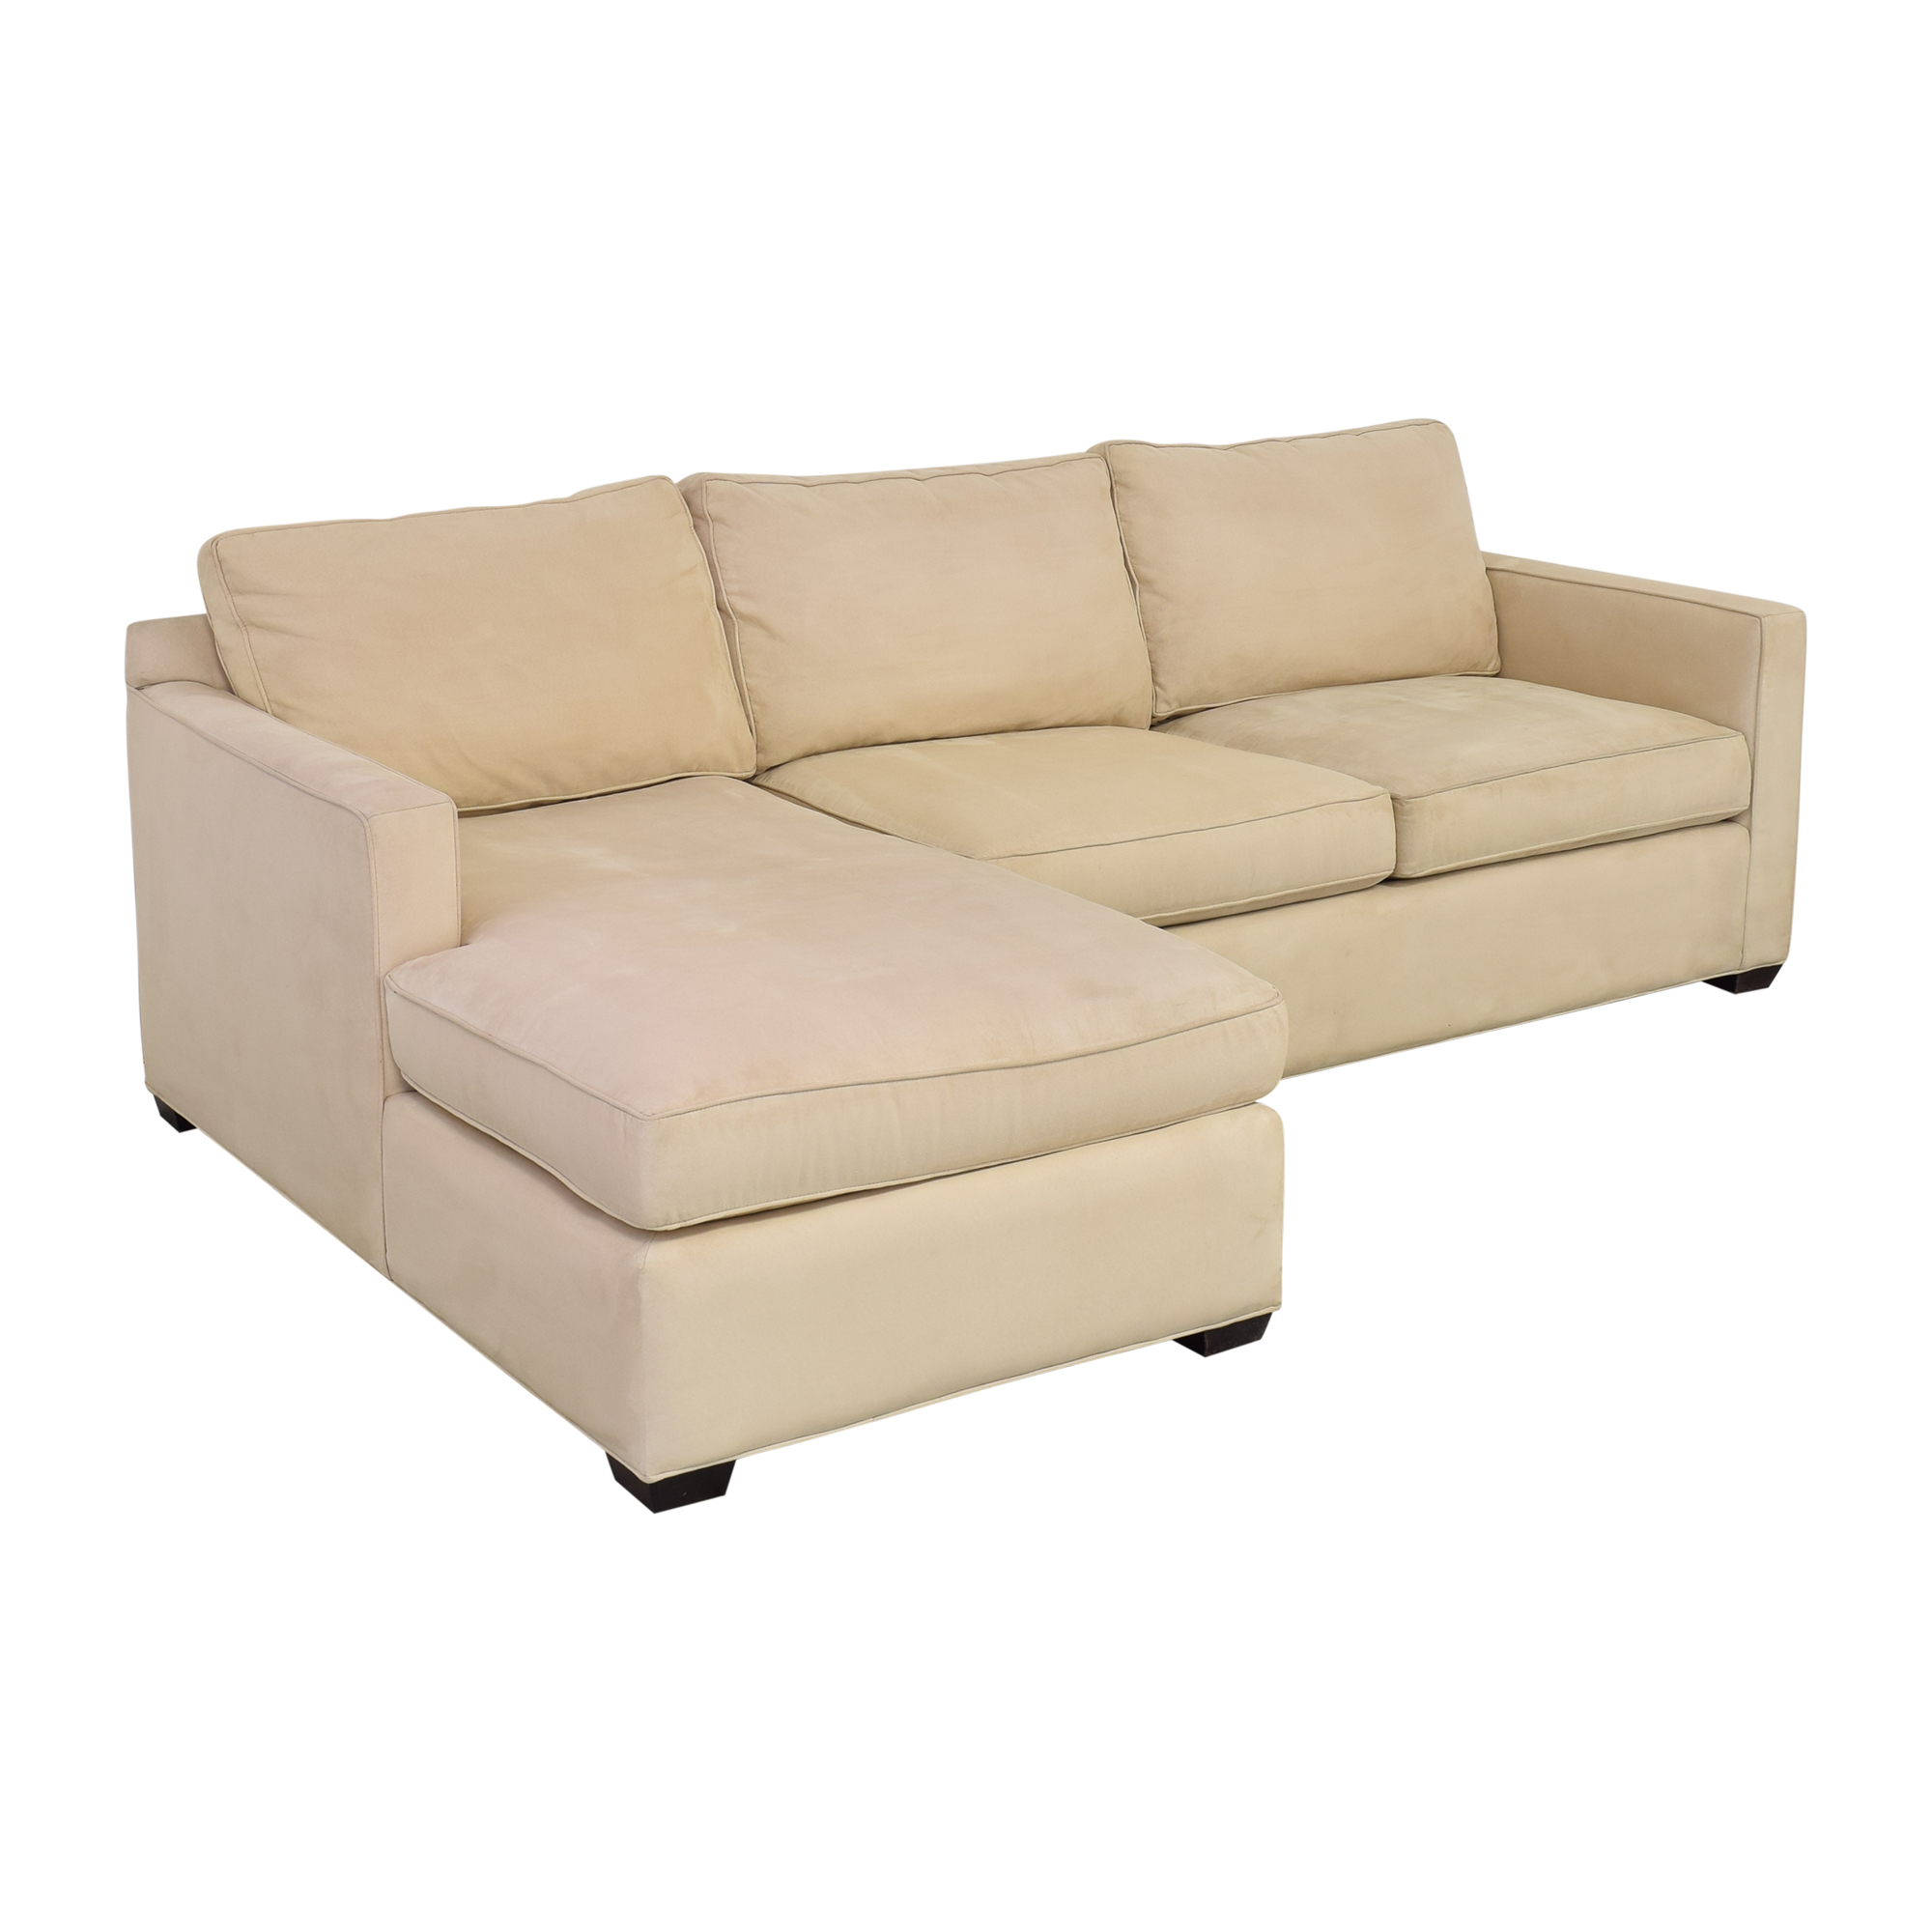 buy Crate & Barrel Davis Chaise Sectional Sofa Crate & Barrel Sofas